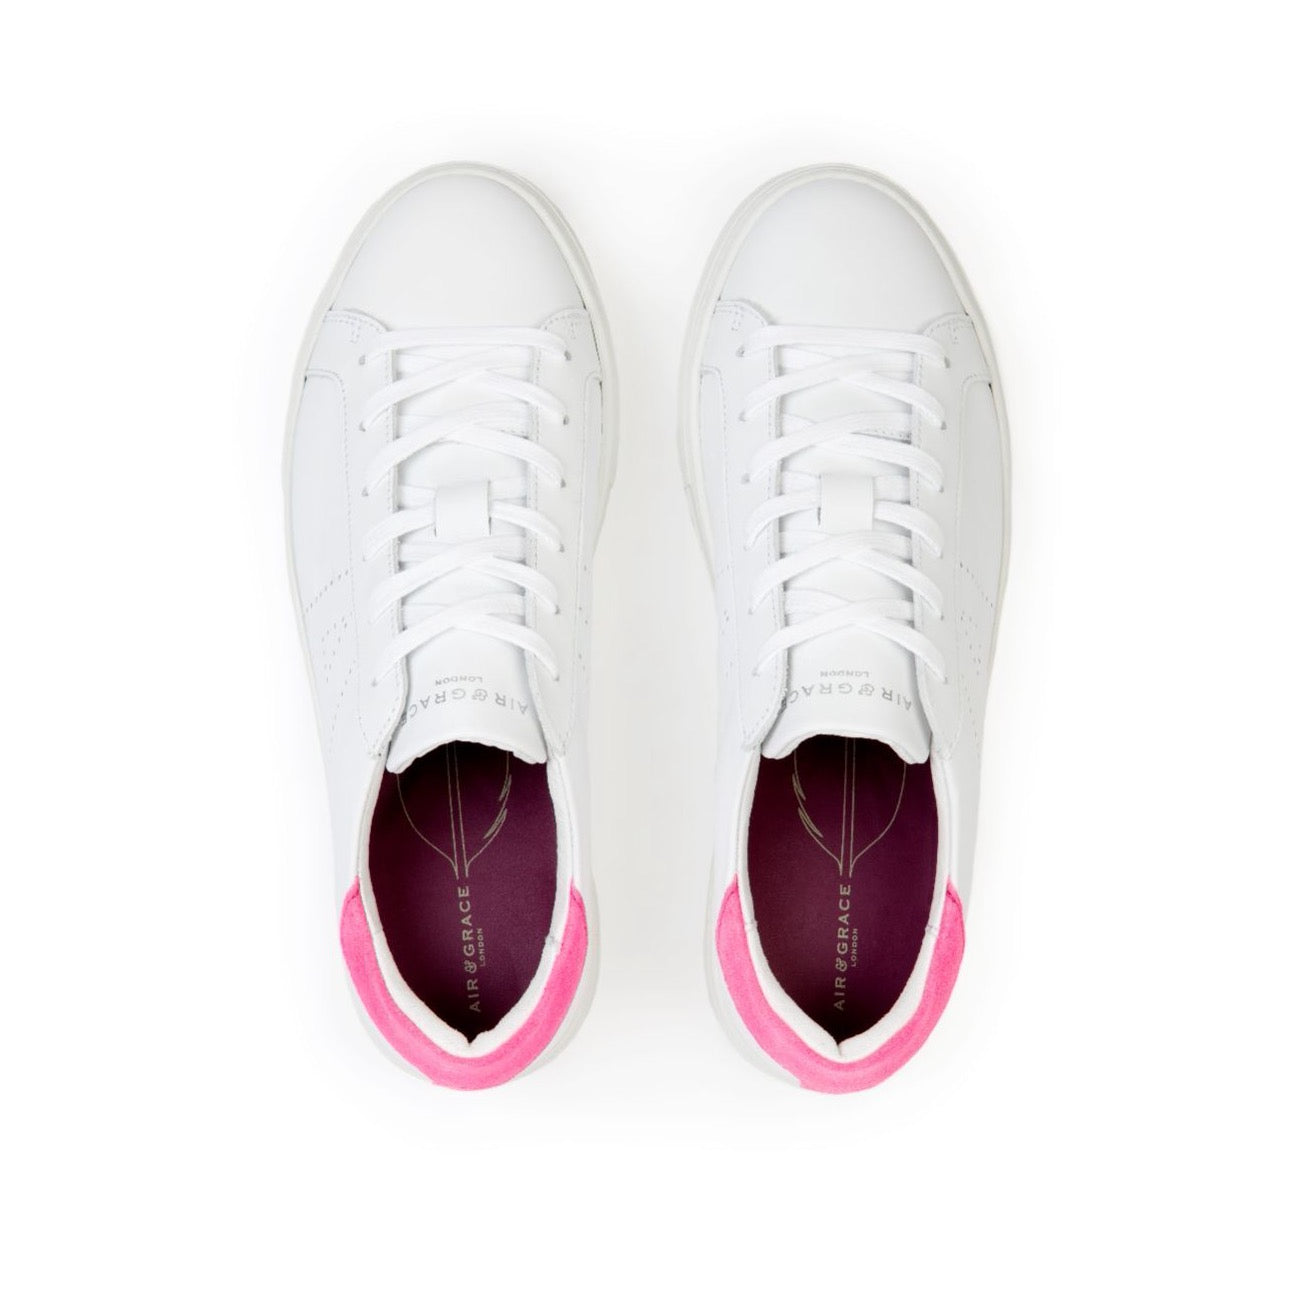 ROXY: WHITE & NEON PINK TRAINERS